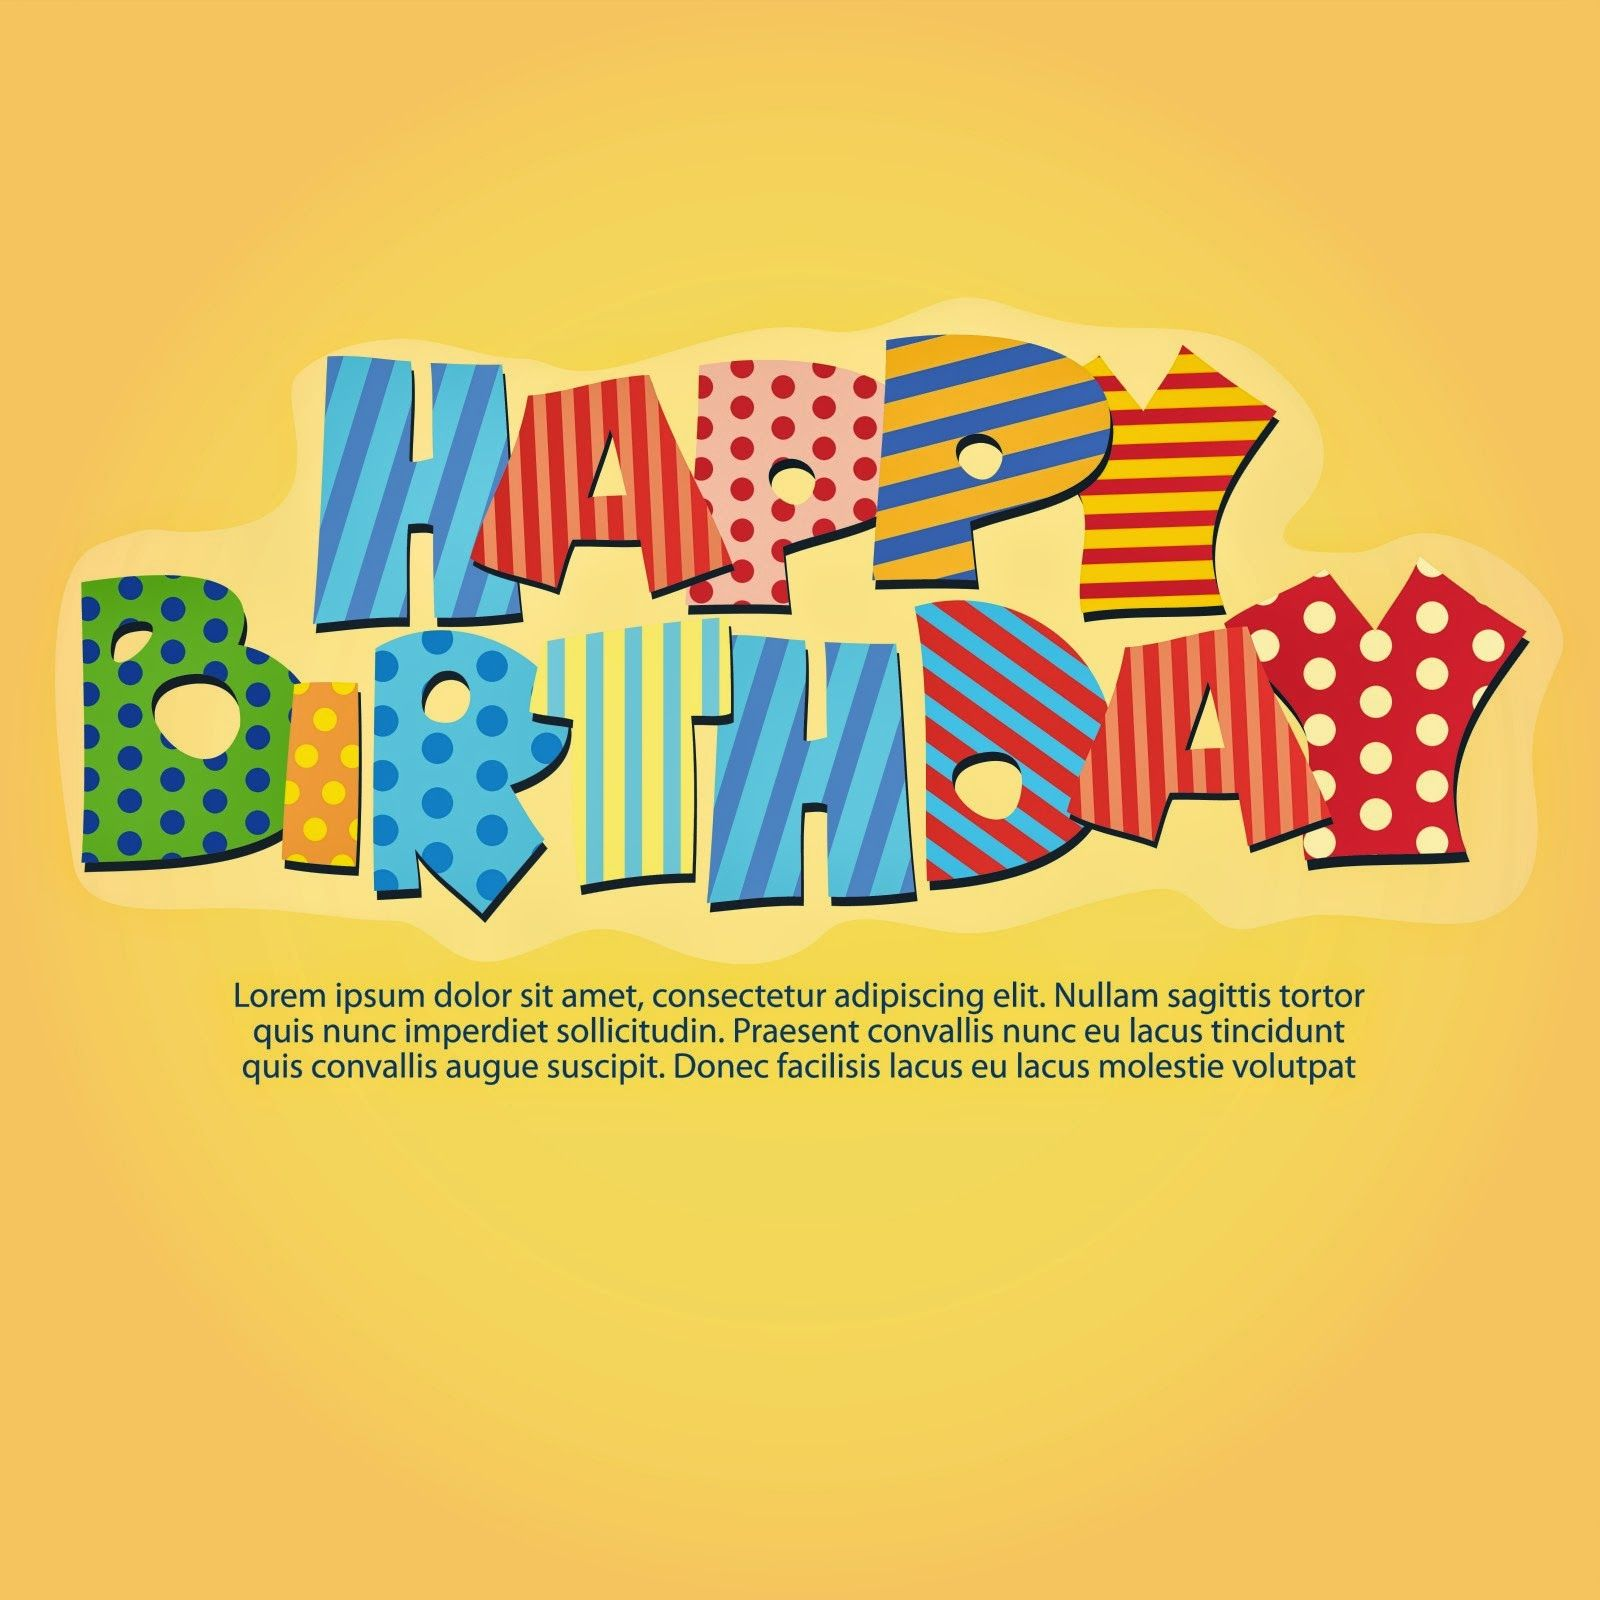 Happy birthday wishes wallpaper free download happy birthday happy birthday wishes wallpaper free download happy birthday wishes images free download happy birthday quotes voltagebd Images